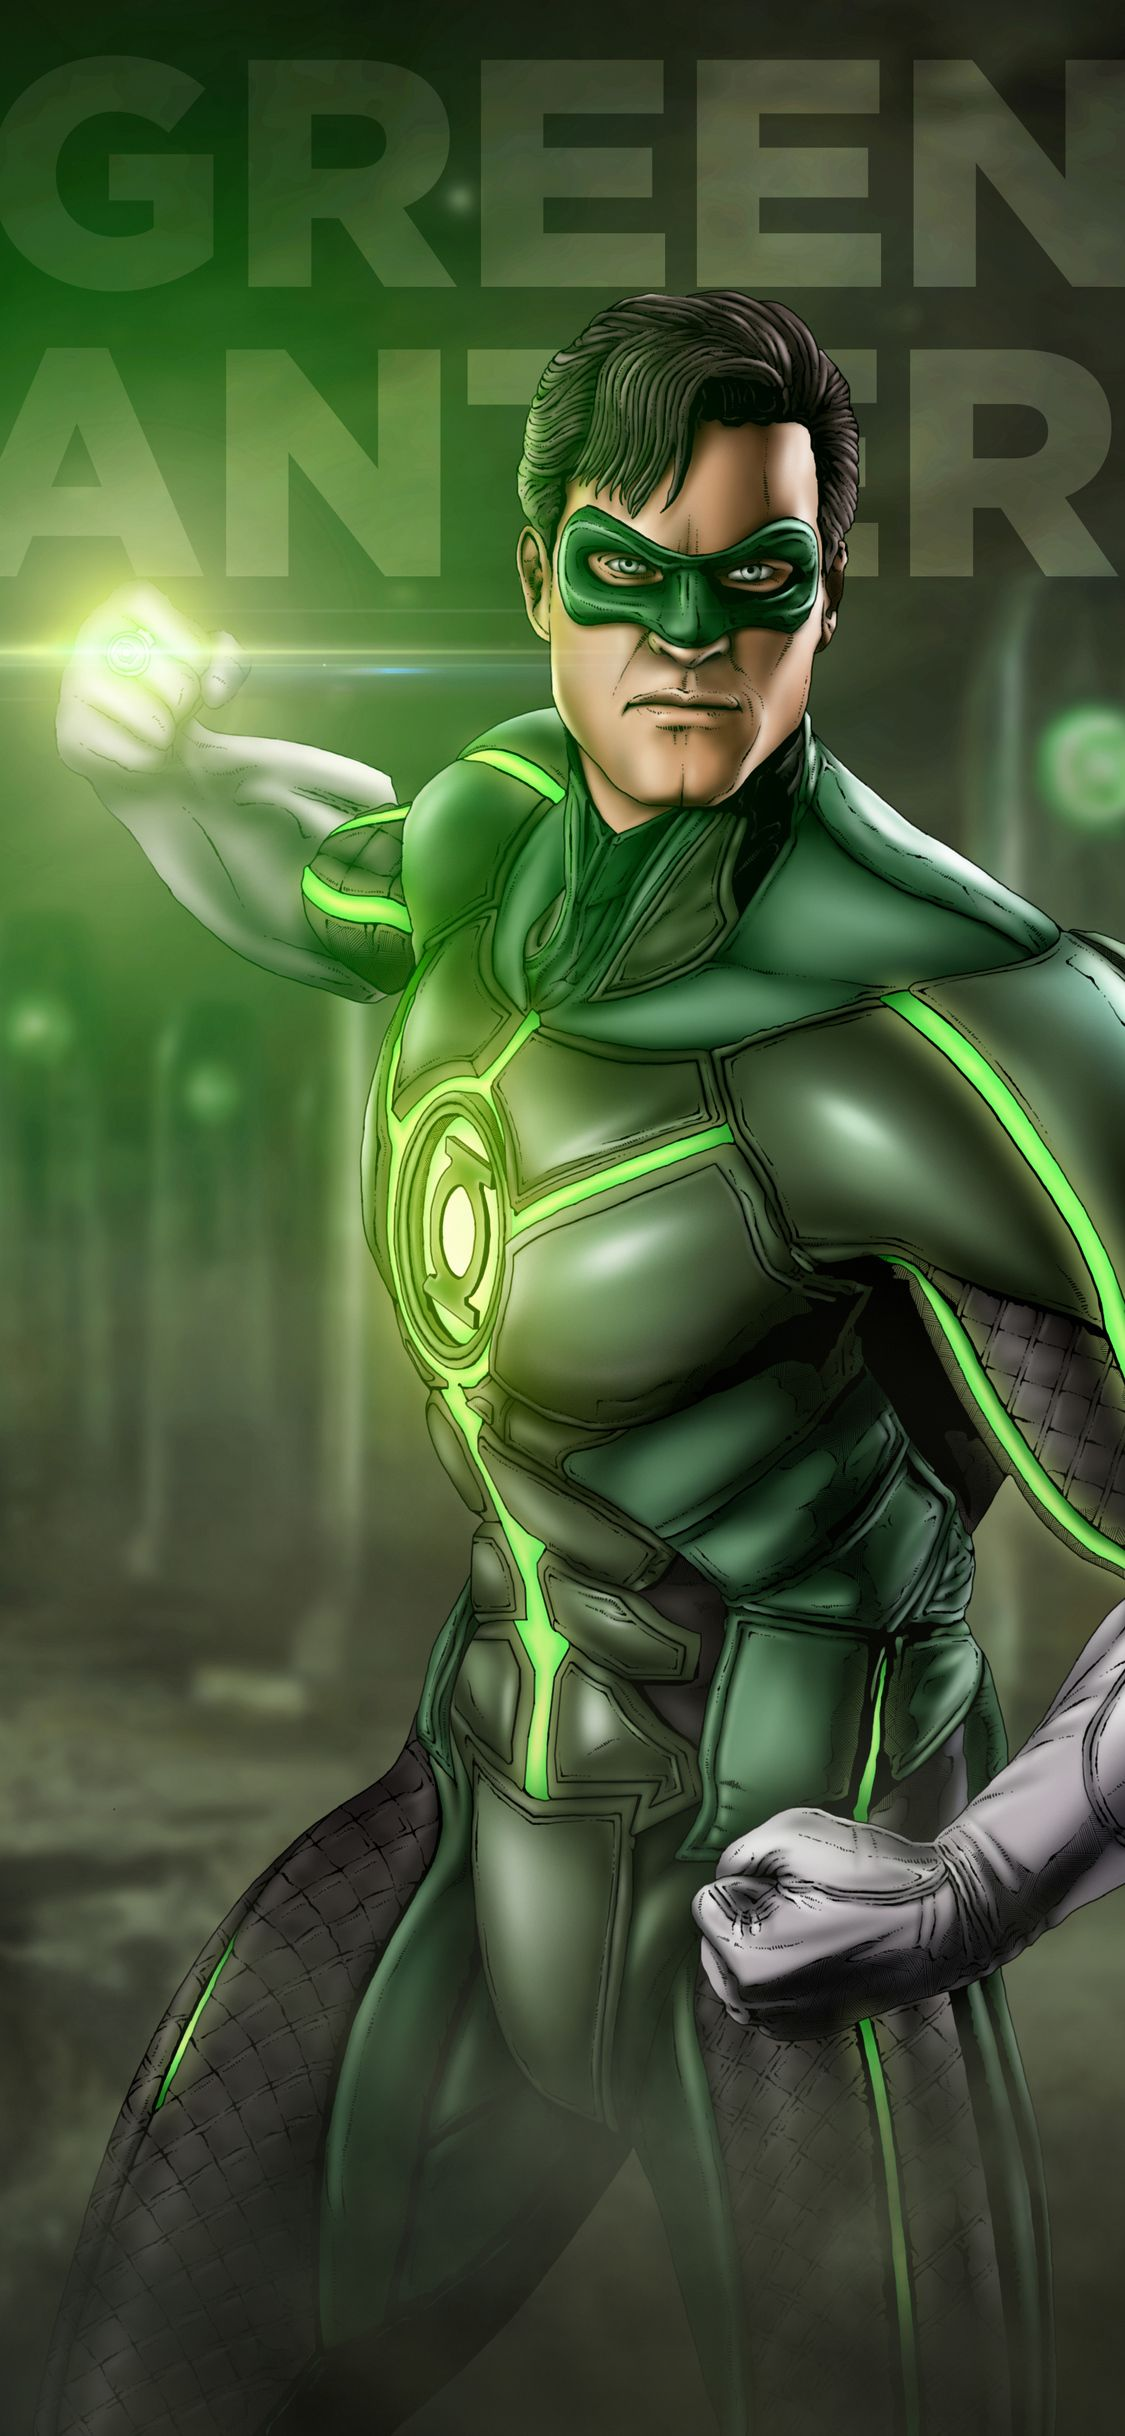 1125x2436 Green Lantern Artwork Iphone Xs Iphone 10 Iphone X Hd 4k Wallpapers Images Backgrounds Phot Green Lantern Comics Green Lantern Corps Green Lantern